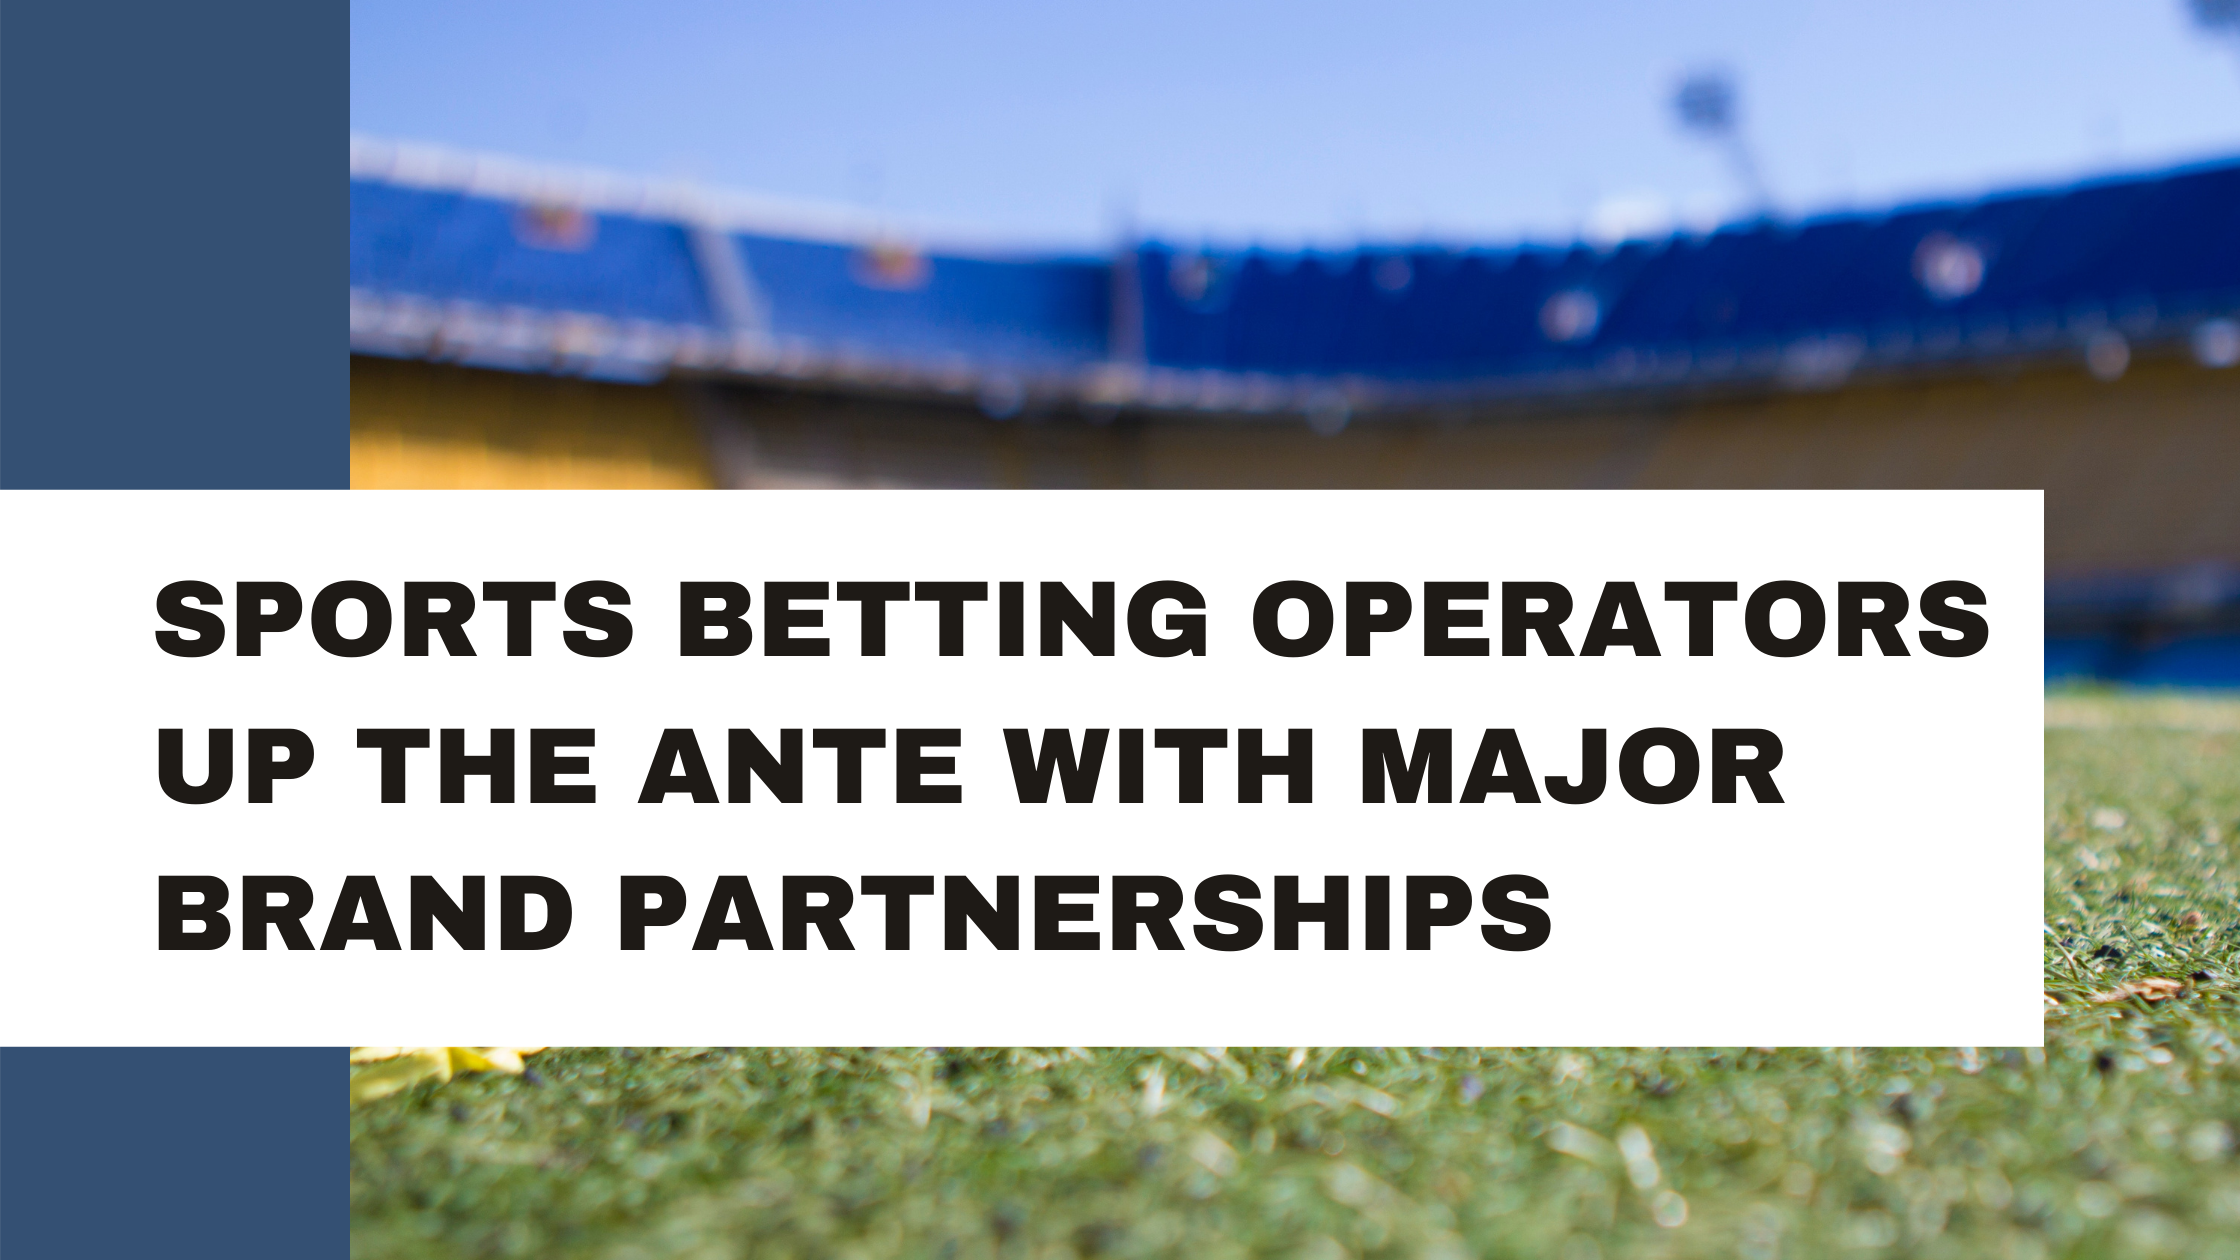 Sports Betting Operators Up the Ante with Major Brand Partnerships